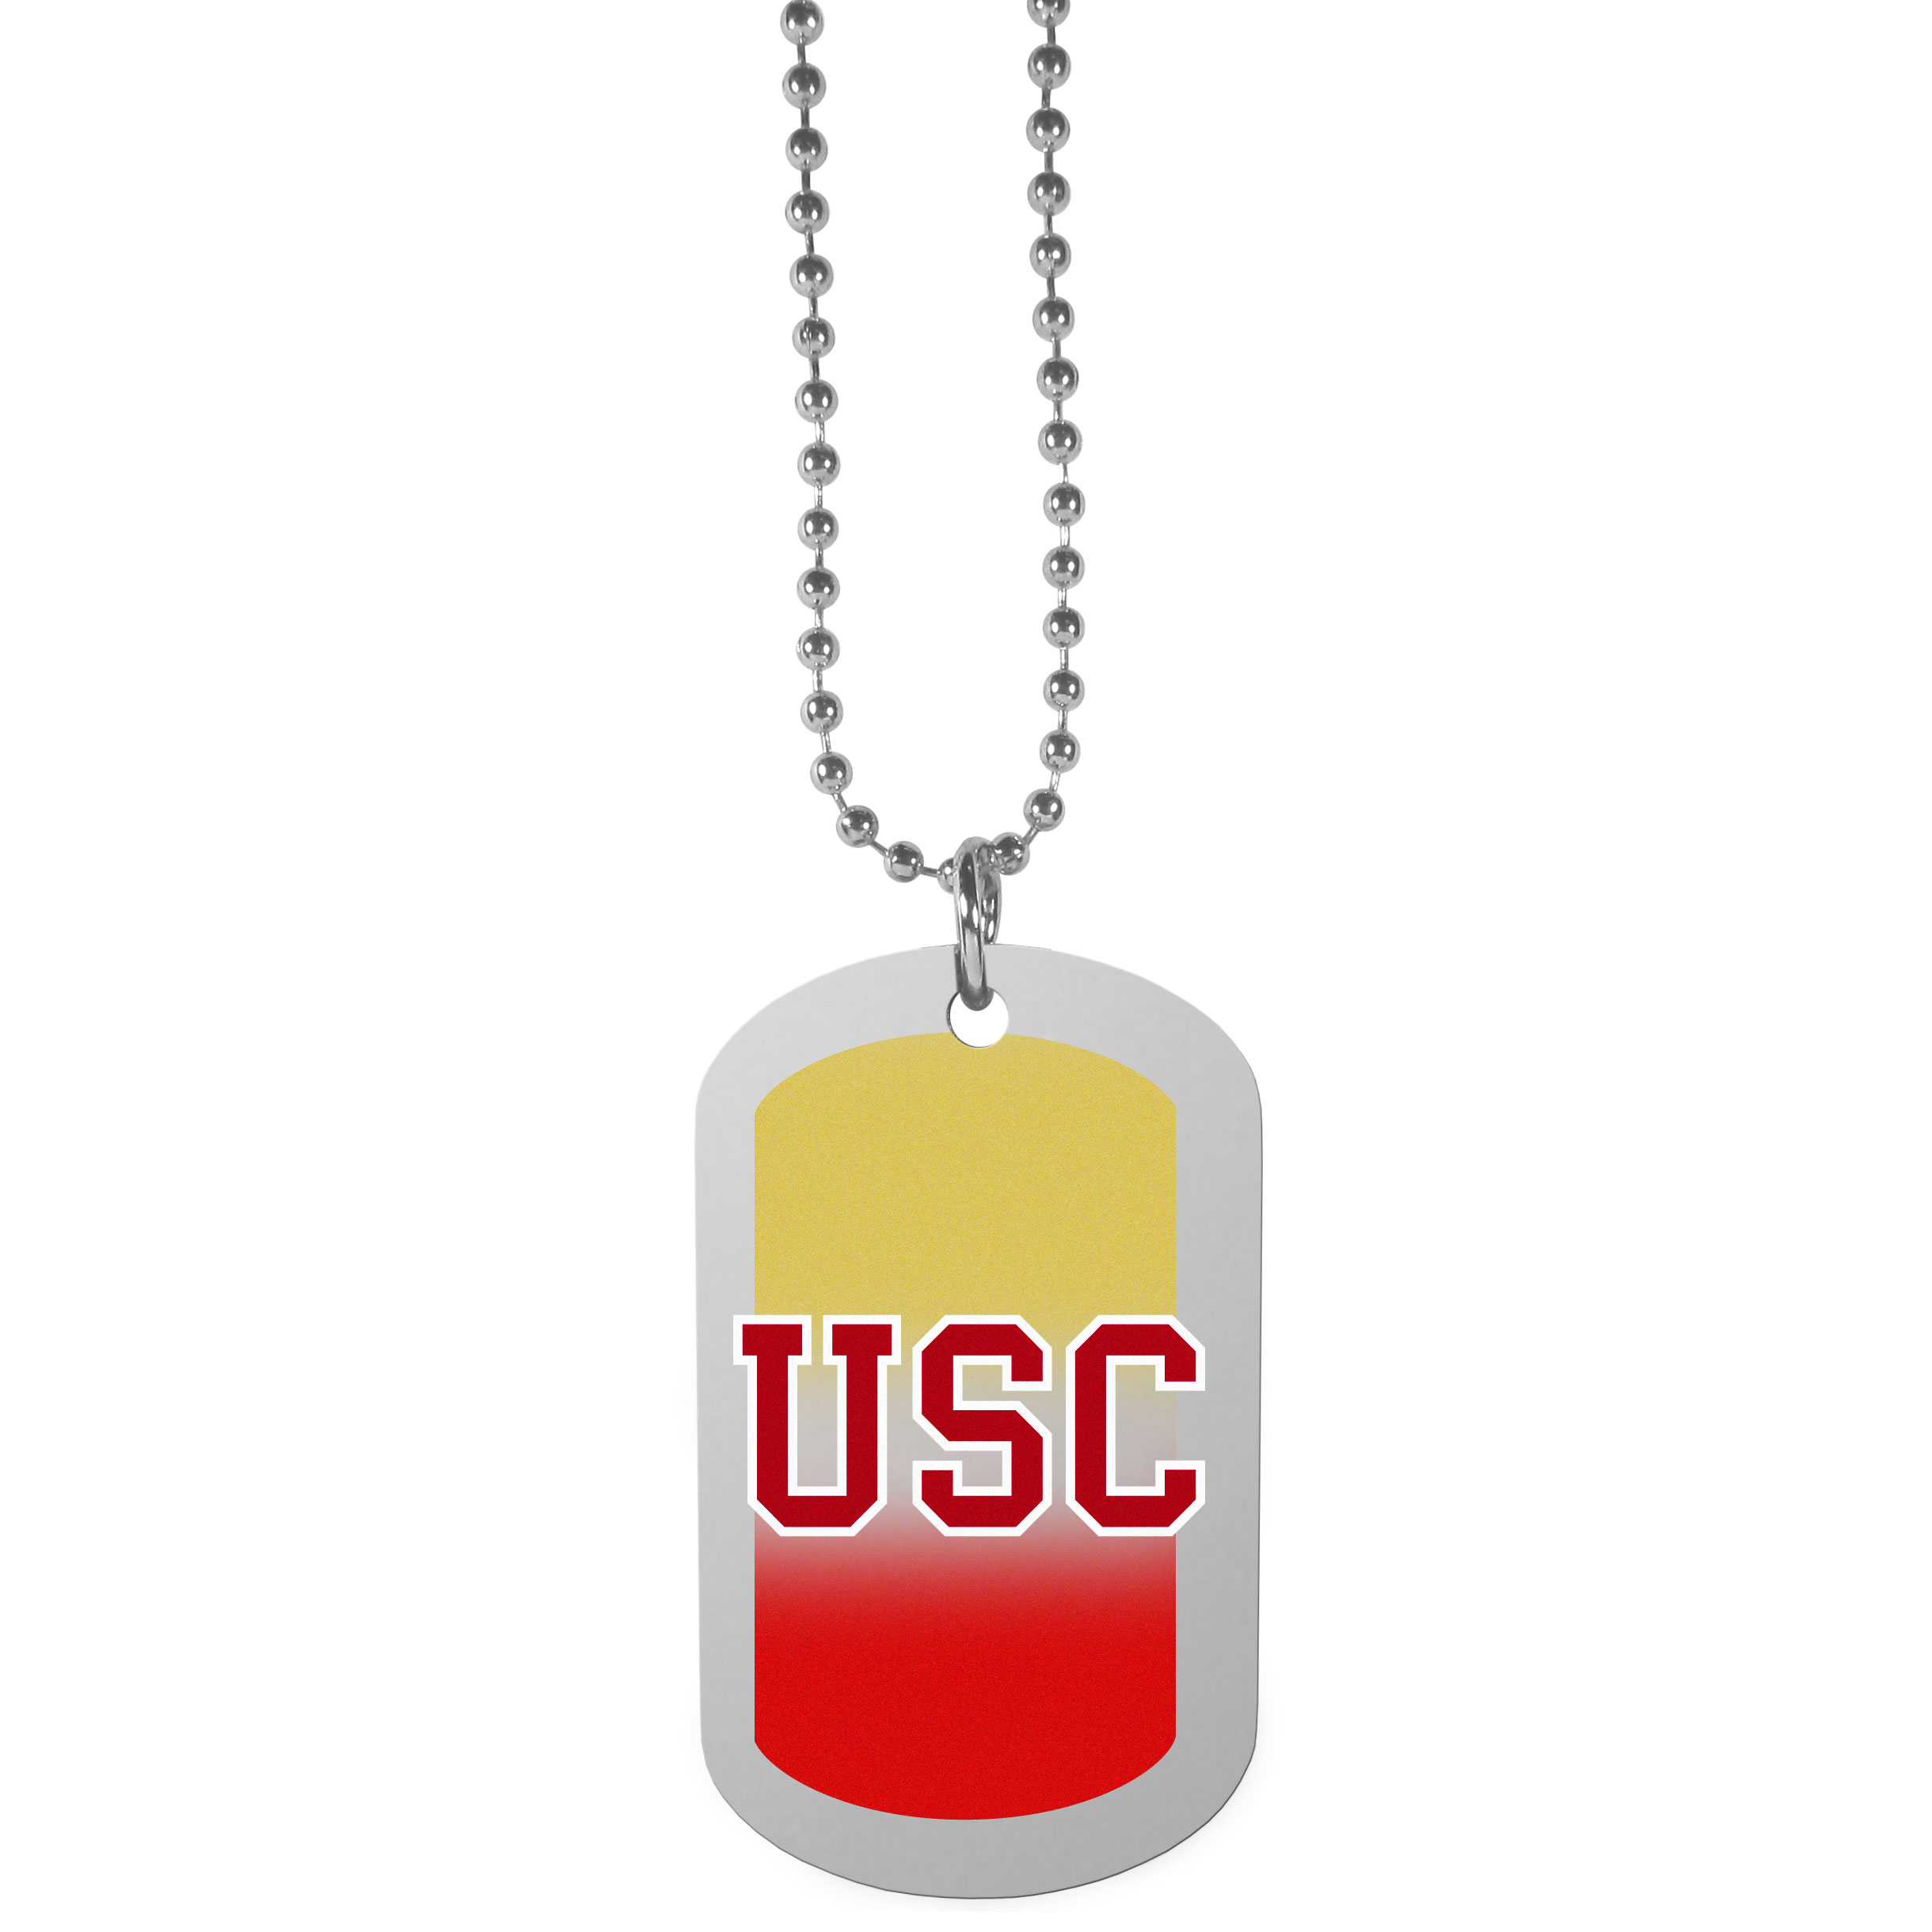 USC Trojans Team Tag Necklace - Dog tag necklaces are a fashion statement that is here to stay. The sporty version of the classic tag features a gradient print in team colors featuring a full color team logo over a high polish tag to create a bold and sporty look. The tag comes on a 26 inch ball chain with a ball and joint clasp. Any USC Trojans would be proud to wear this attractive fashion accessory.